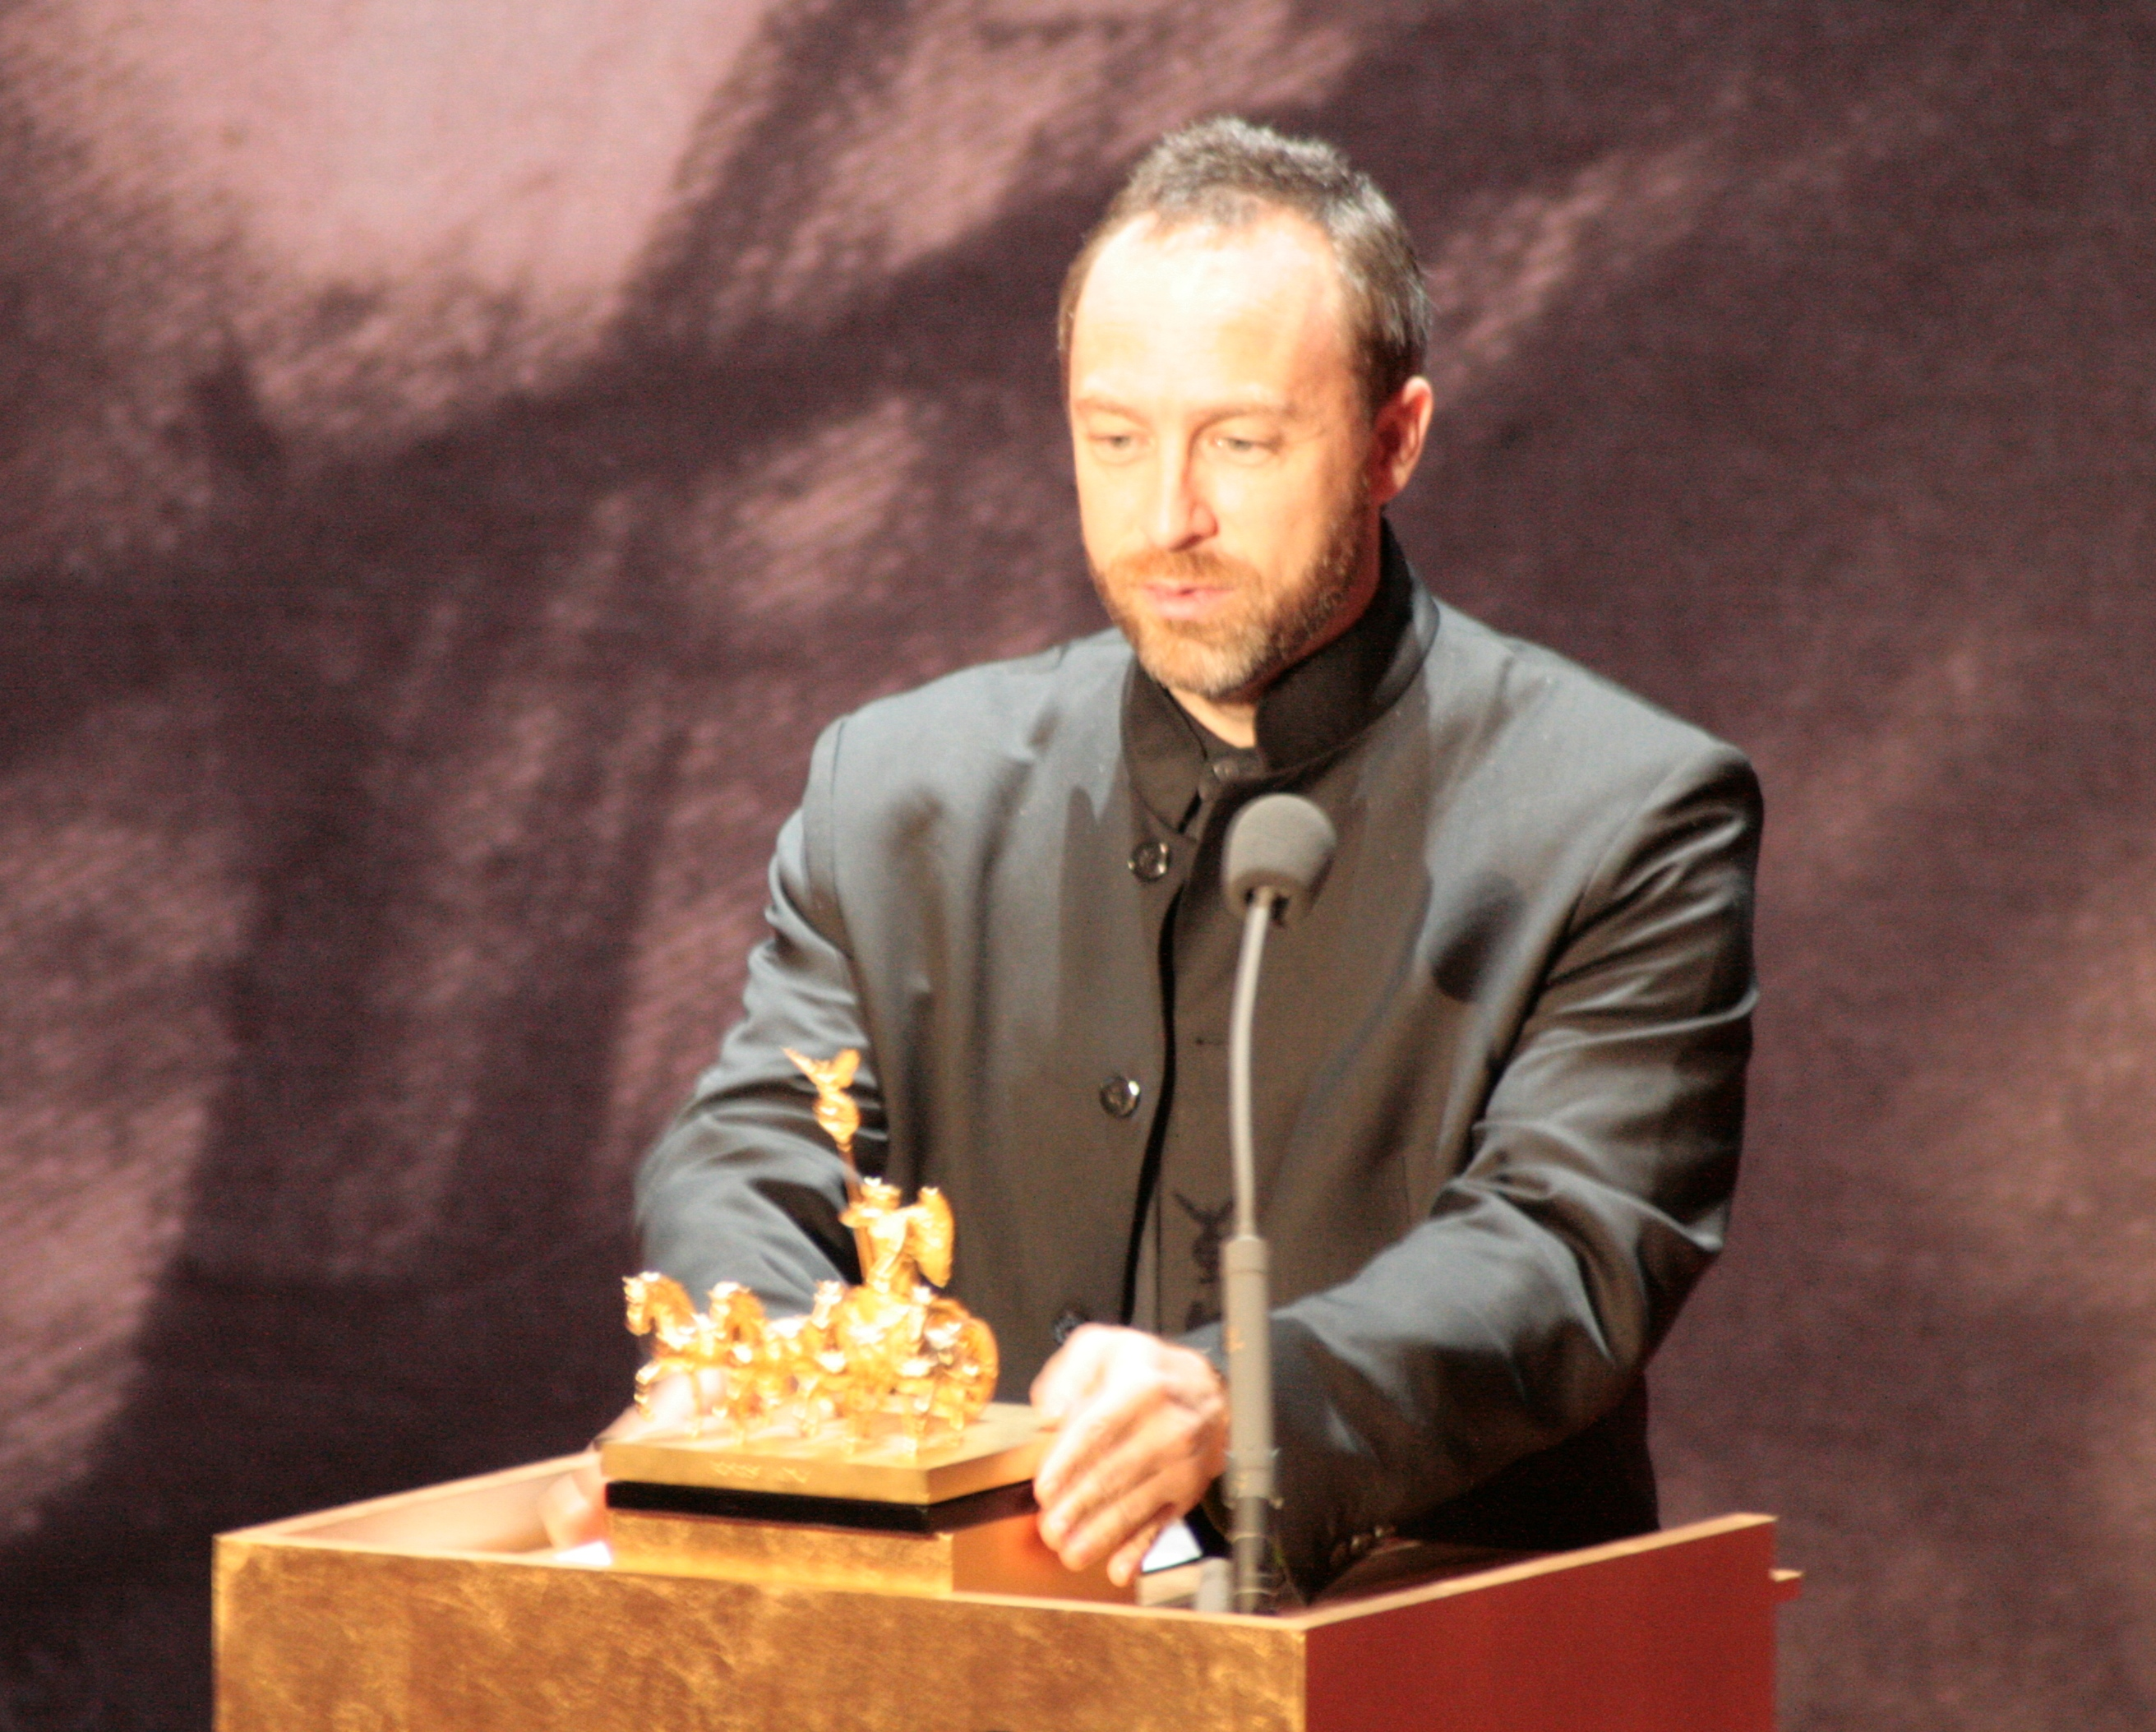 Jimmy Wales receiving the Quadriga A Mission of Enlightenment award